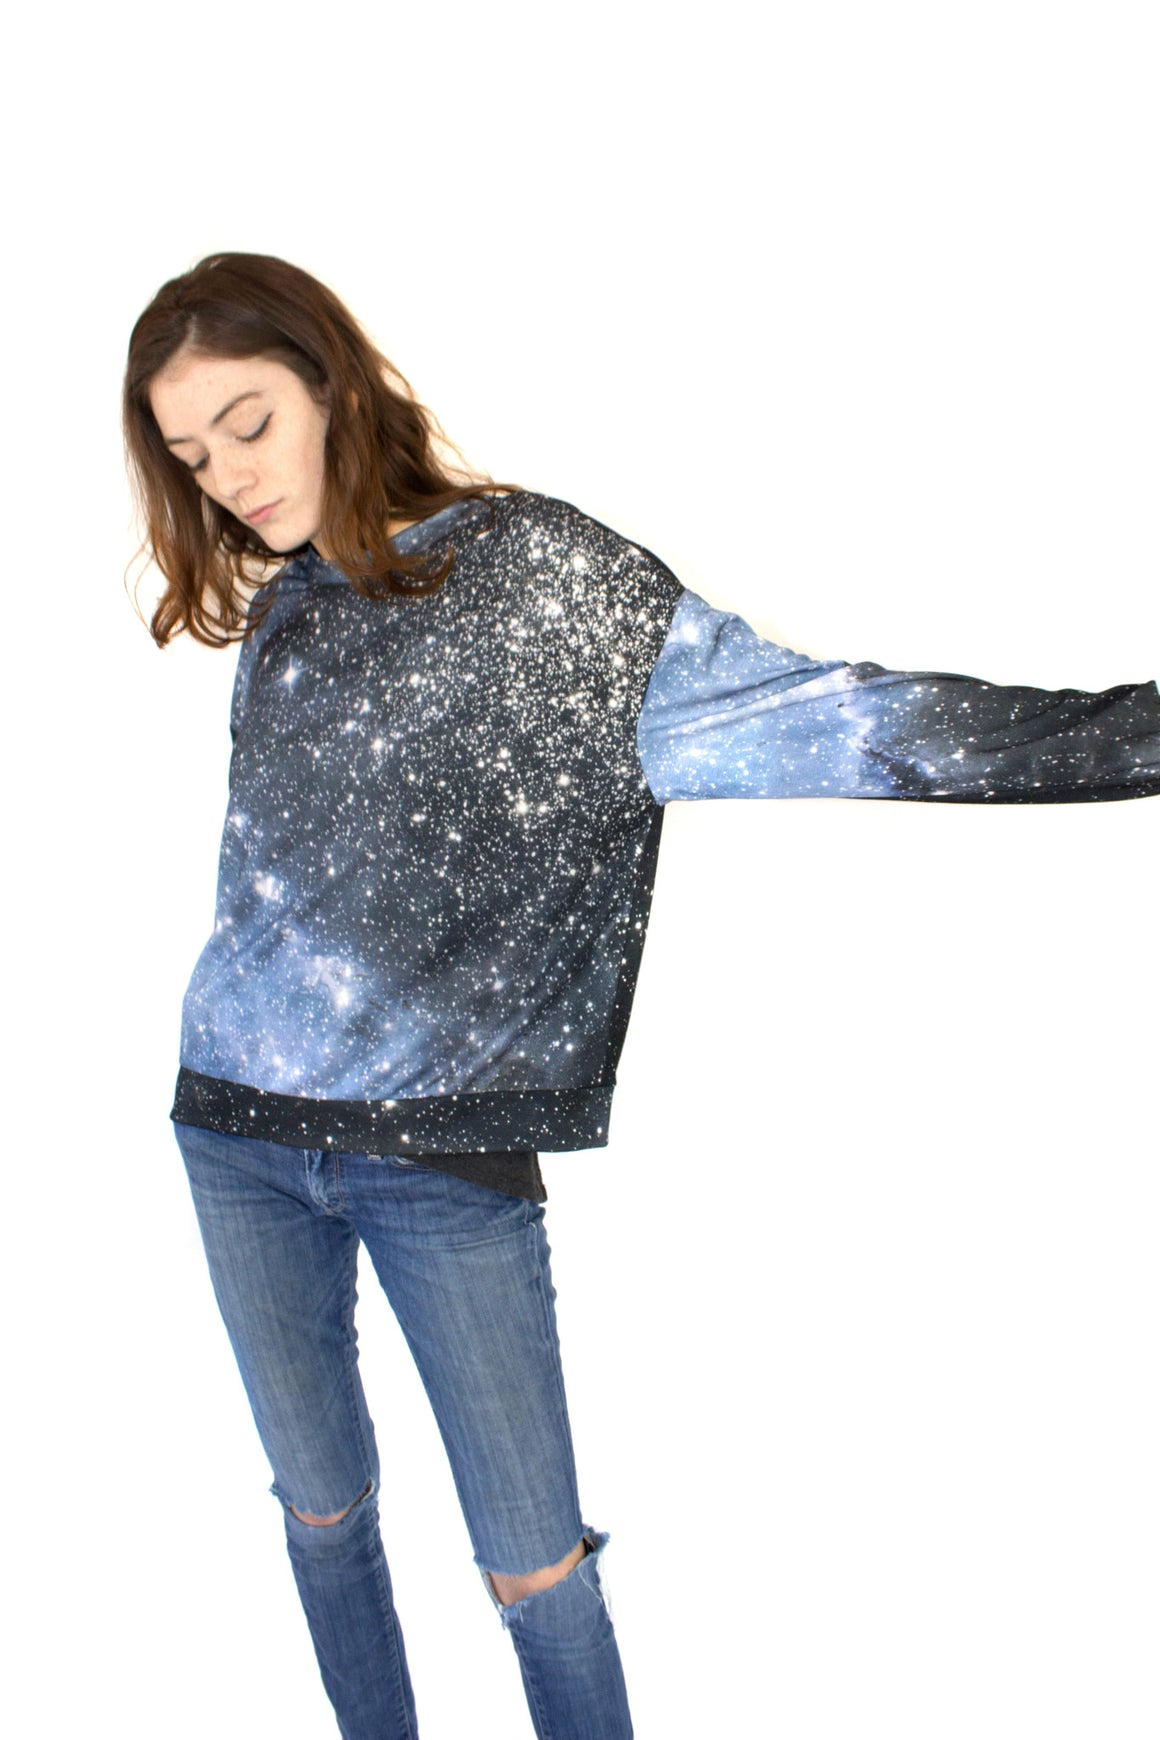 Hubble Galaxy Sweatshirt, Shadowplay New York, Galaxy Print Clothing